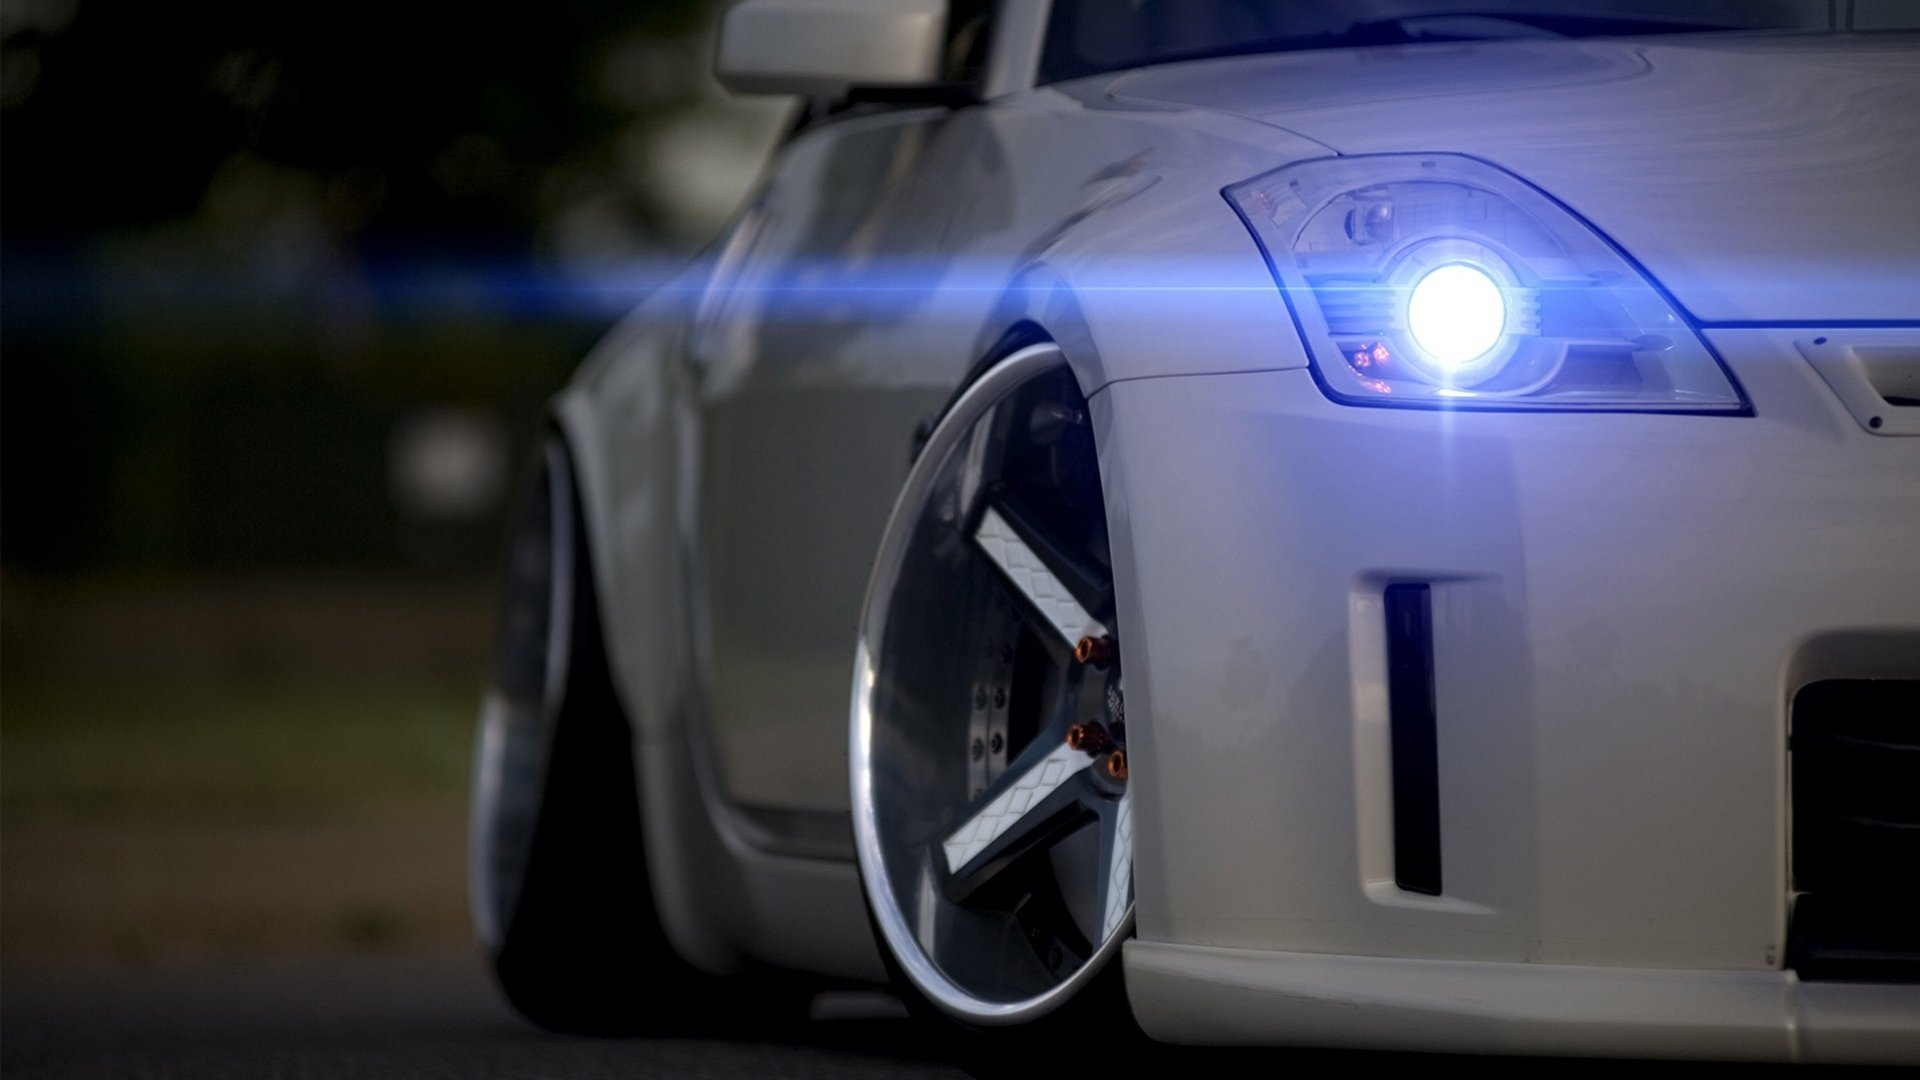 best nissan 350z wallpaper id:456805 for high resolution hd 1920x1080 pc